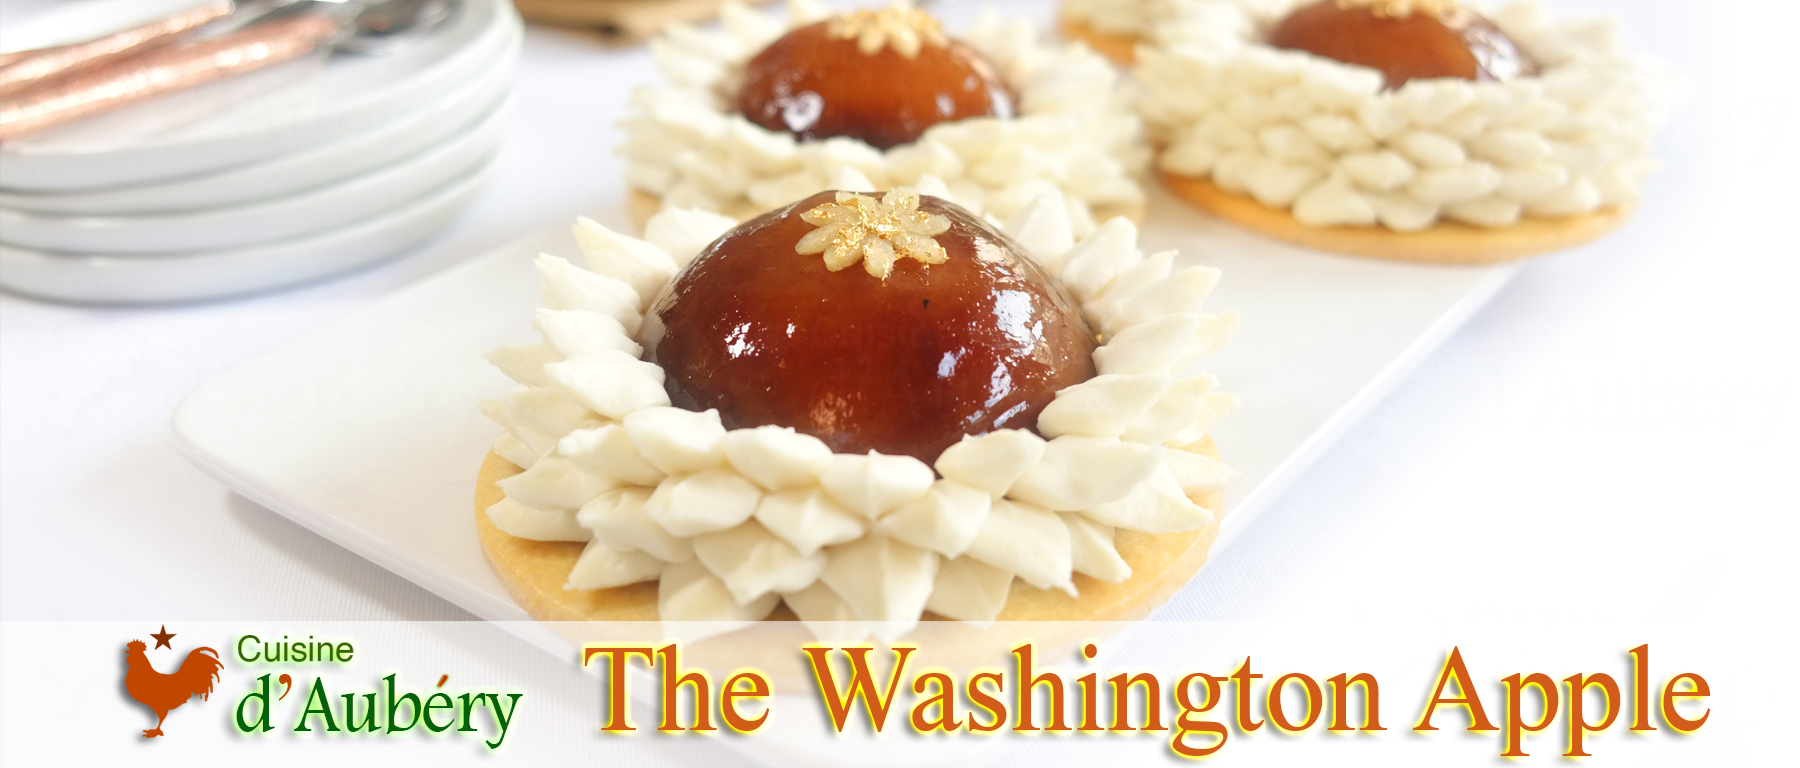 The Washington Apple (Le Meilleur Pâtissier, episode 2)